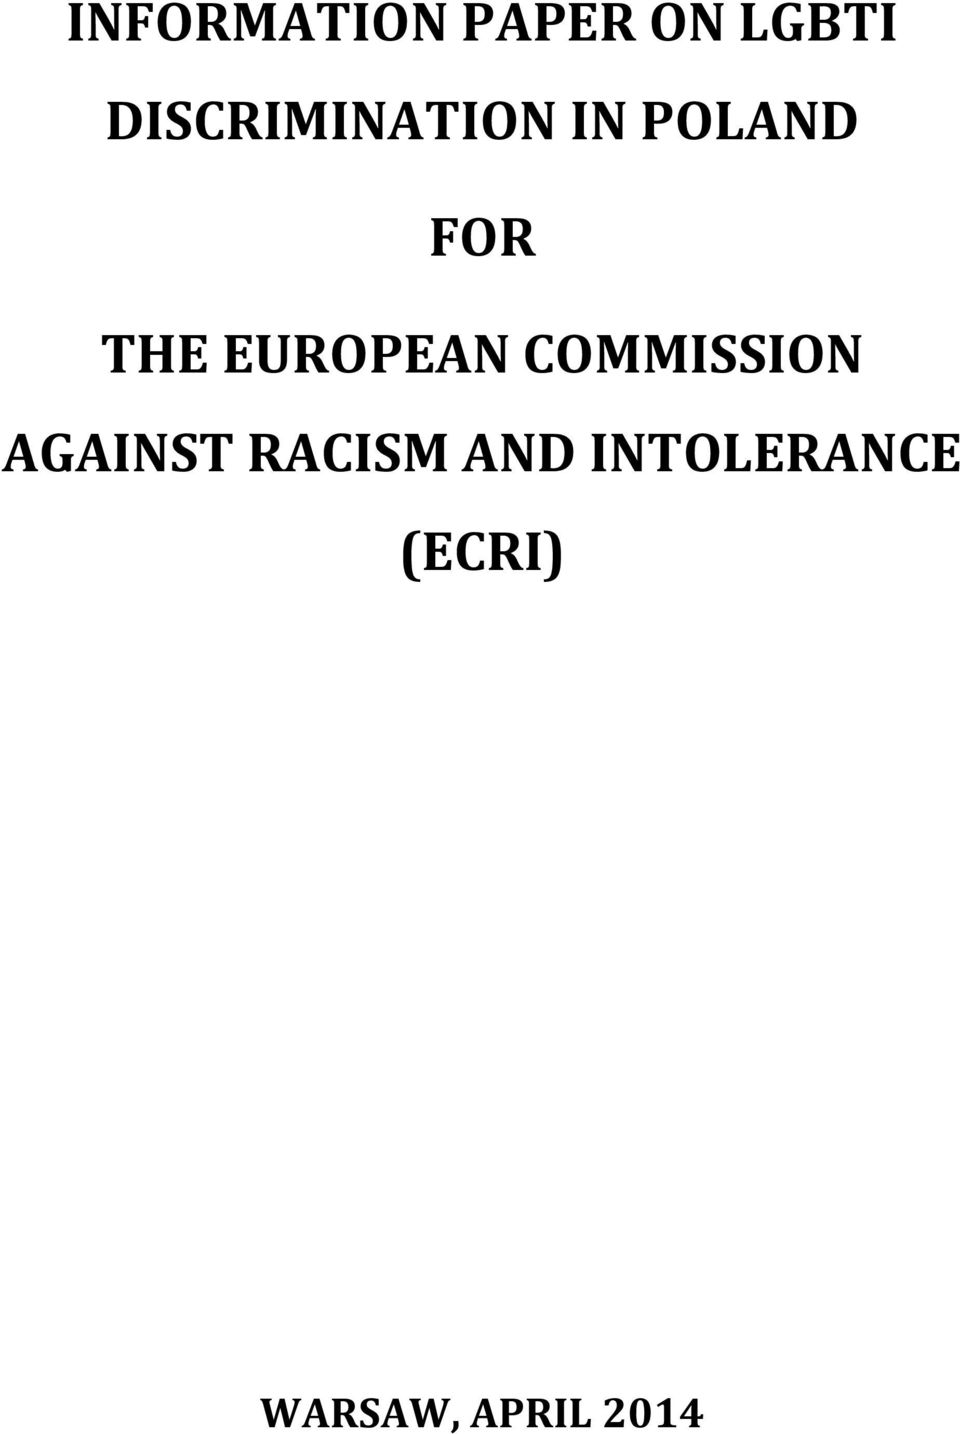 EUROPEAN COMMISSION AGAINST